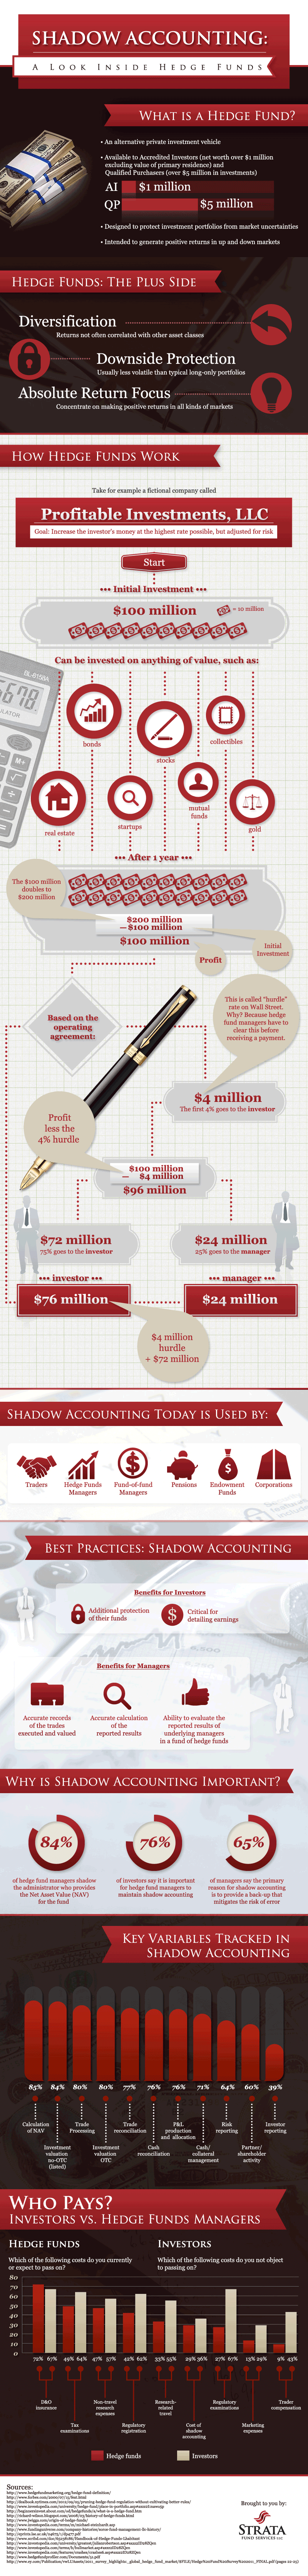 Shadow Accounting: A Look inside Hedge Funds